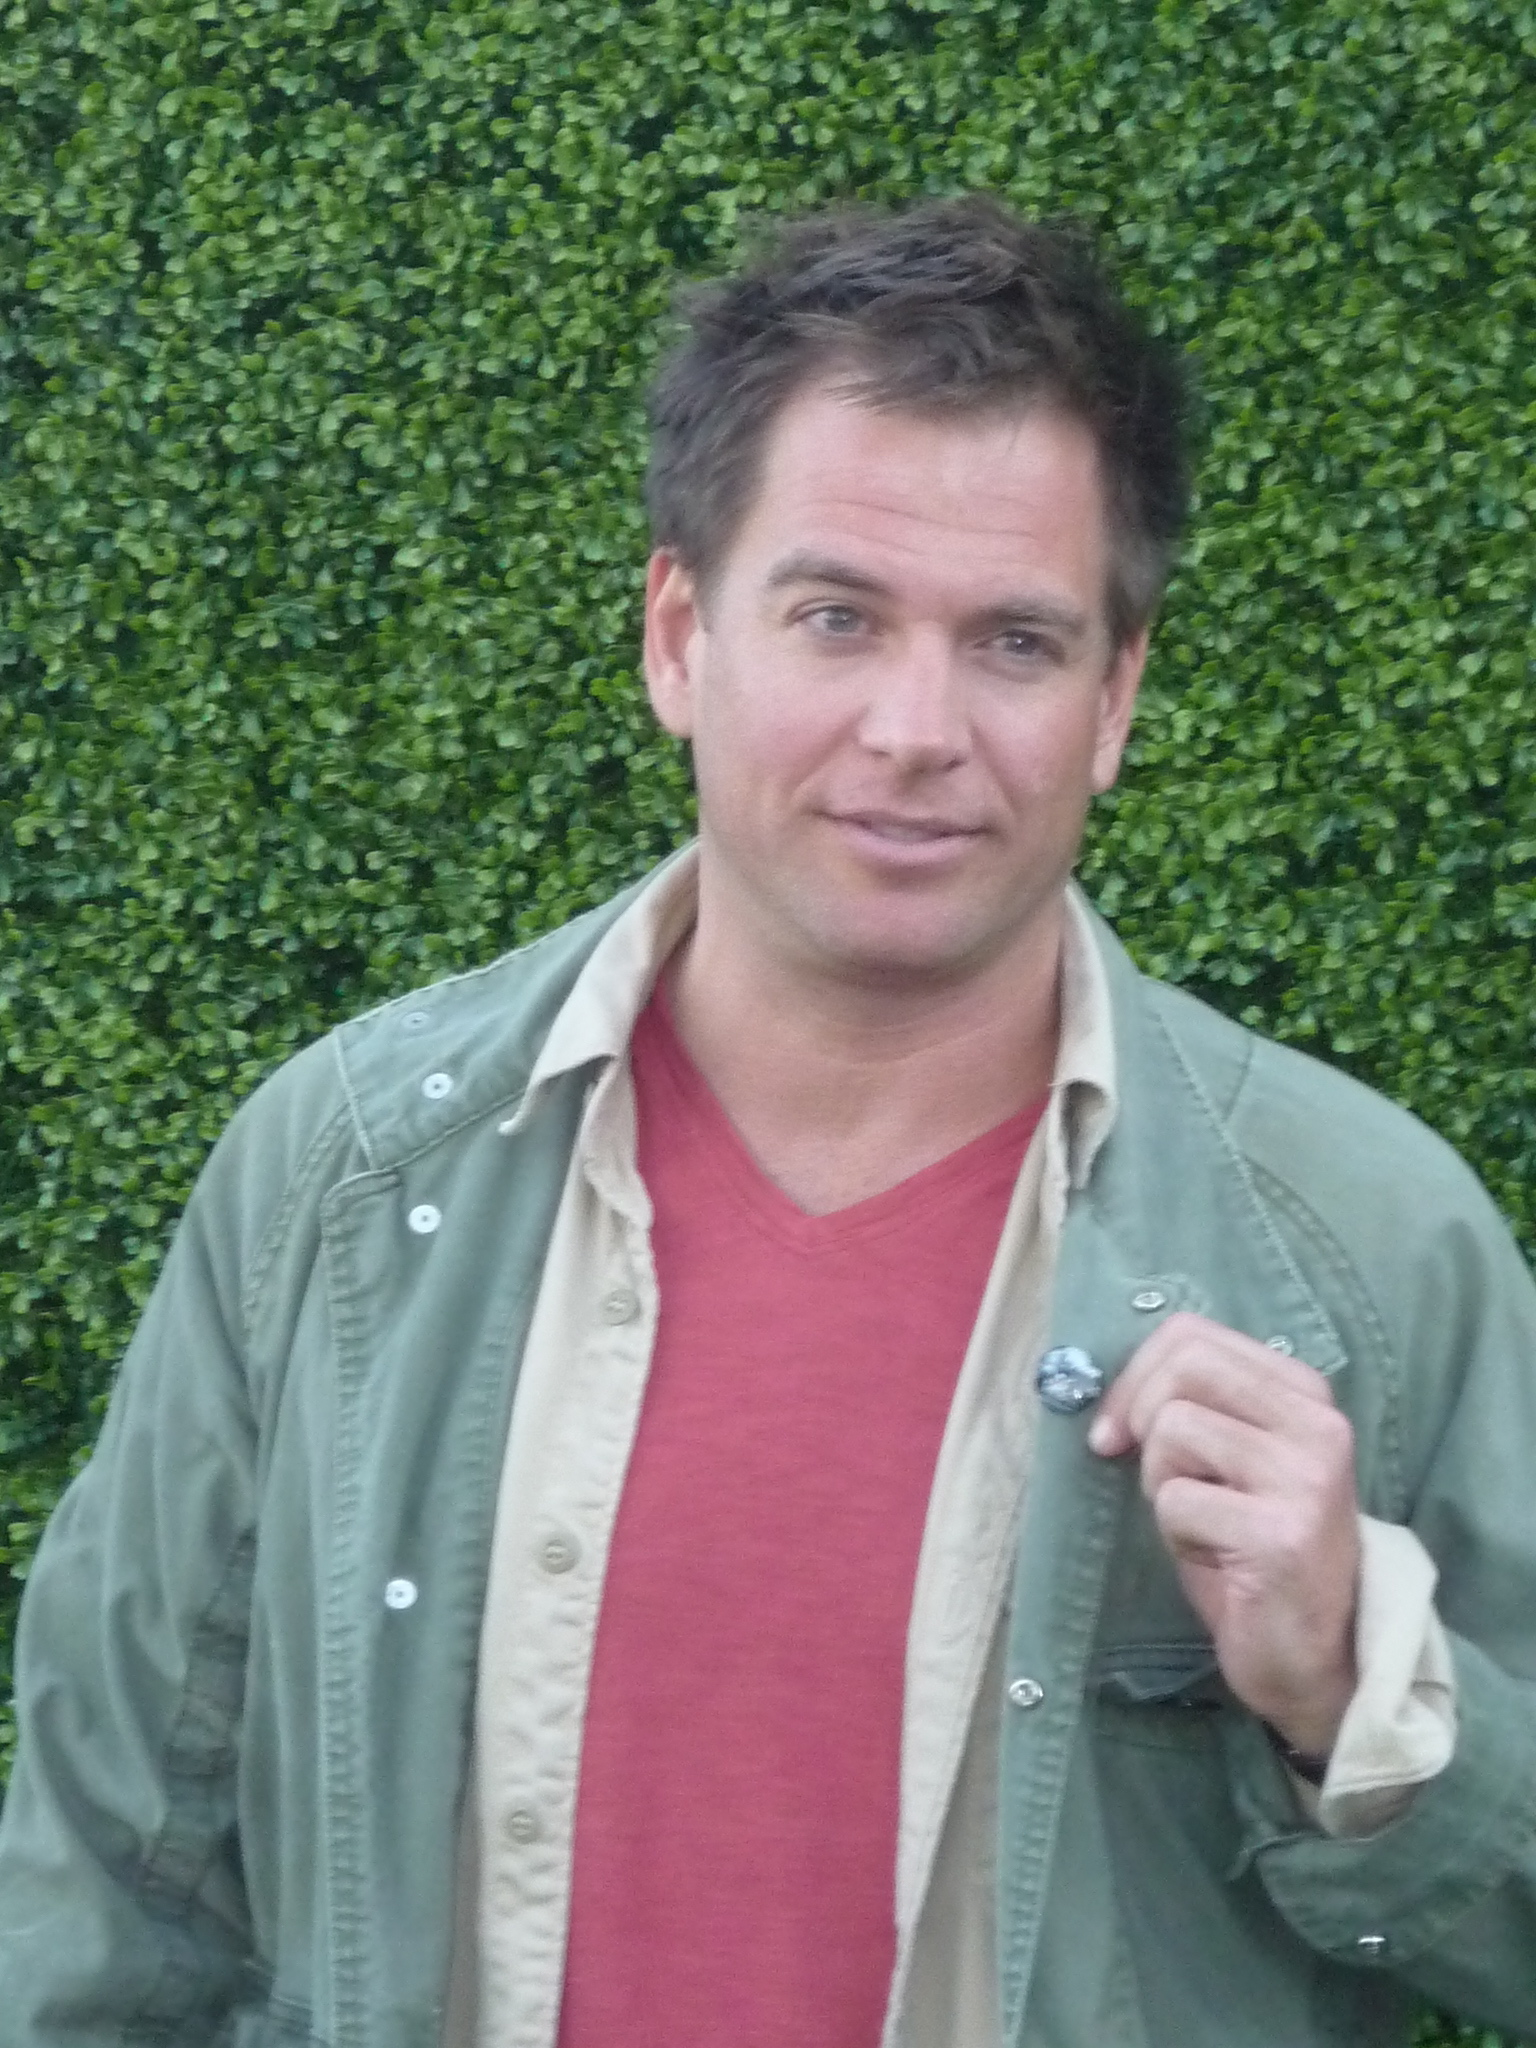 michael weatherly charmedmichael weatherly bull, michael weatherly gifs, michael weatherly height, michael weatherly кинопоиск, michael weatherly ncis, michael weatherly dr phil, michael weatherly and jessica alba relationship, michael weatherly james corden, michael weatherly height weight, michael weatherly young, michael weatherly charmed, michael weatherly imdb, michael weatherly movies, michael weatherly instagram, michael weatherly tumblr, michael weatherly wife, michael weatherly under the sun, michael weatherly facebook, michael weatherly photo gallery, michael weatherly filme